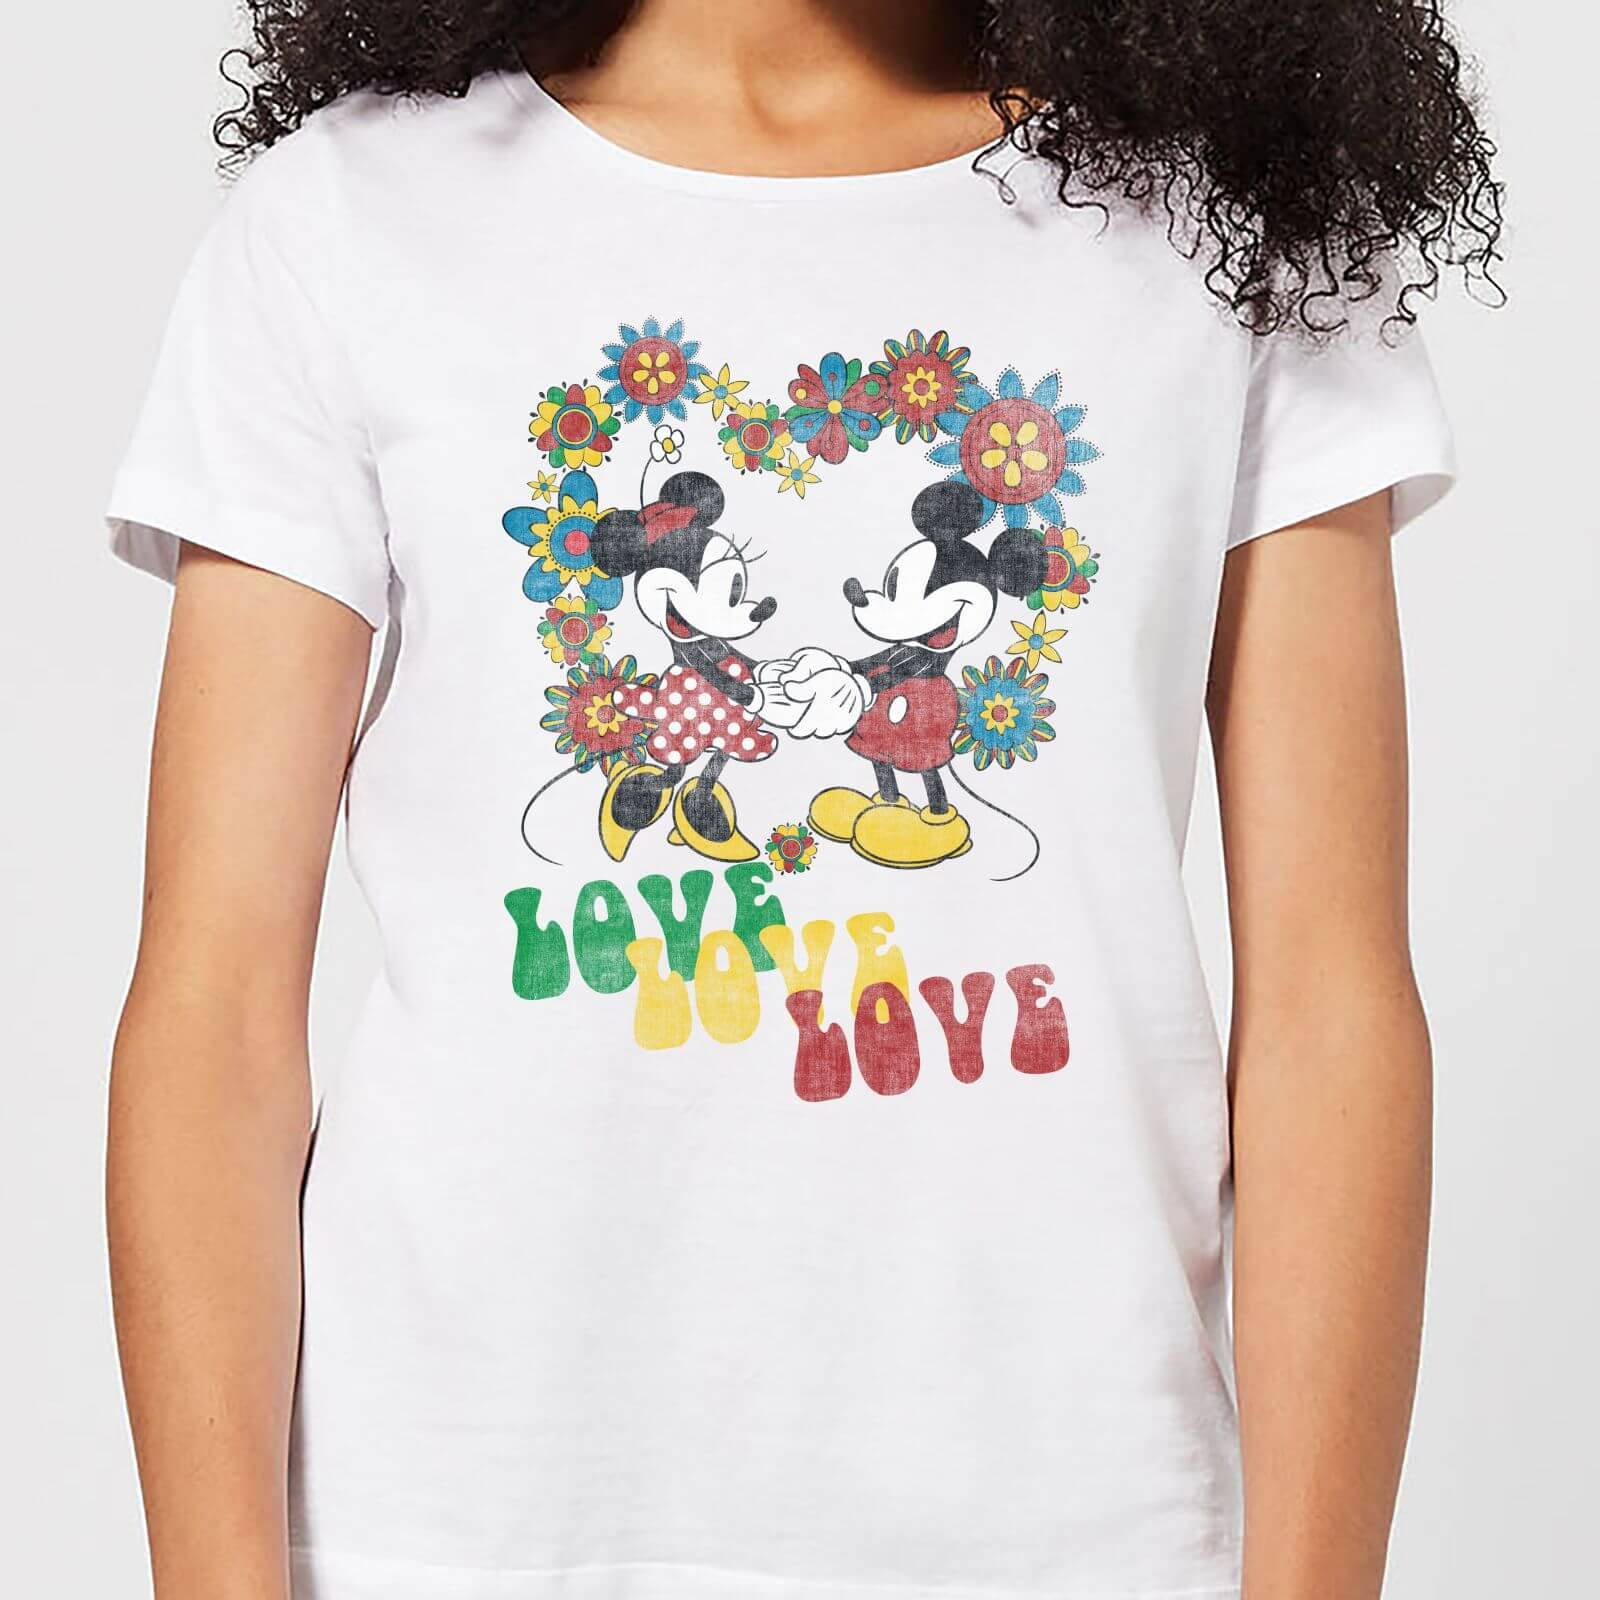 Disney Mickey Mouse Hippie Love Women's T-Shirt - White - 5XL - White